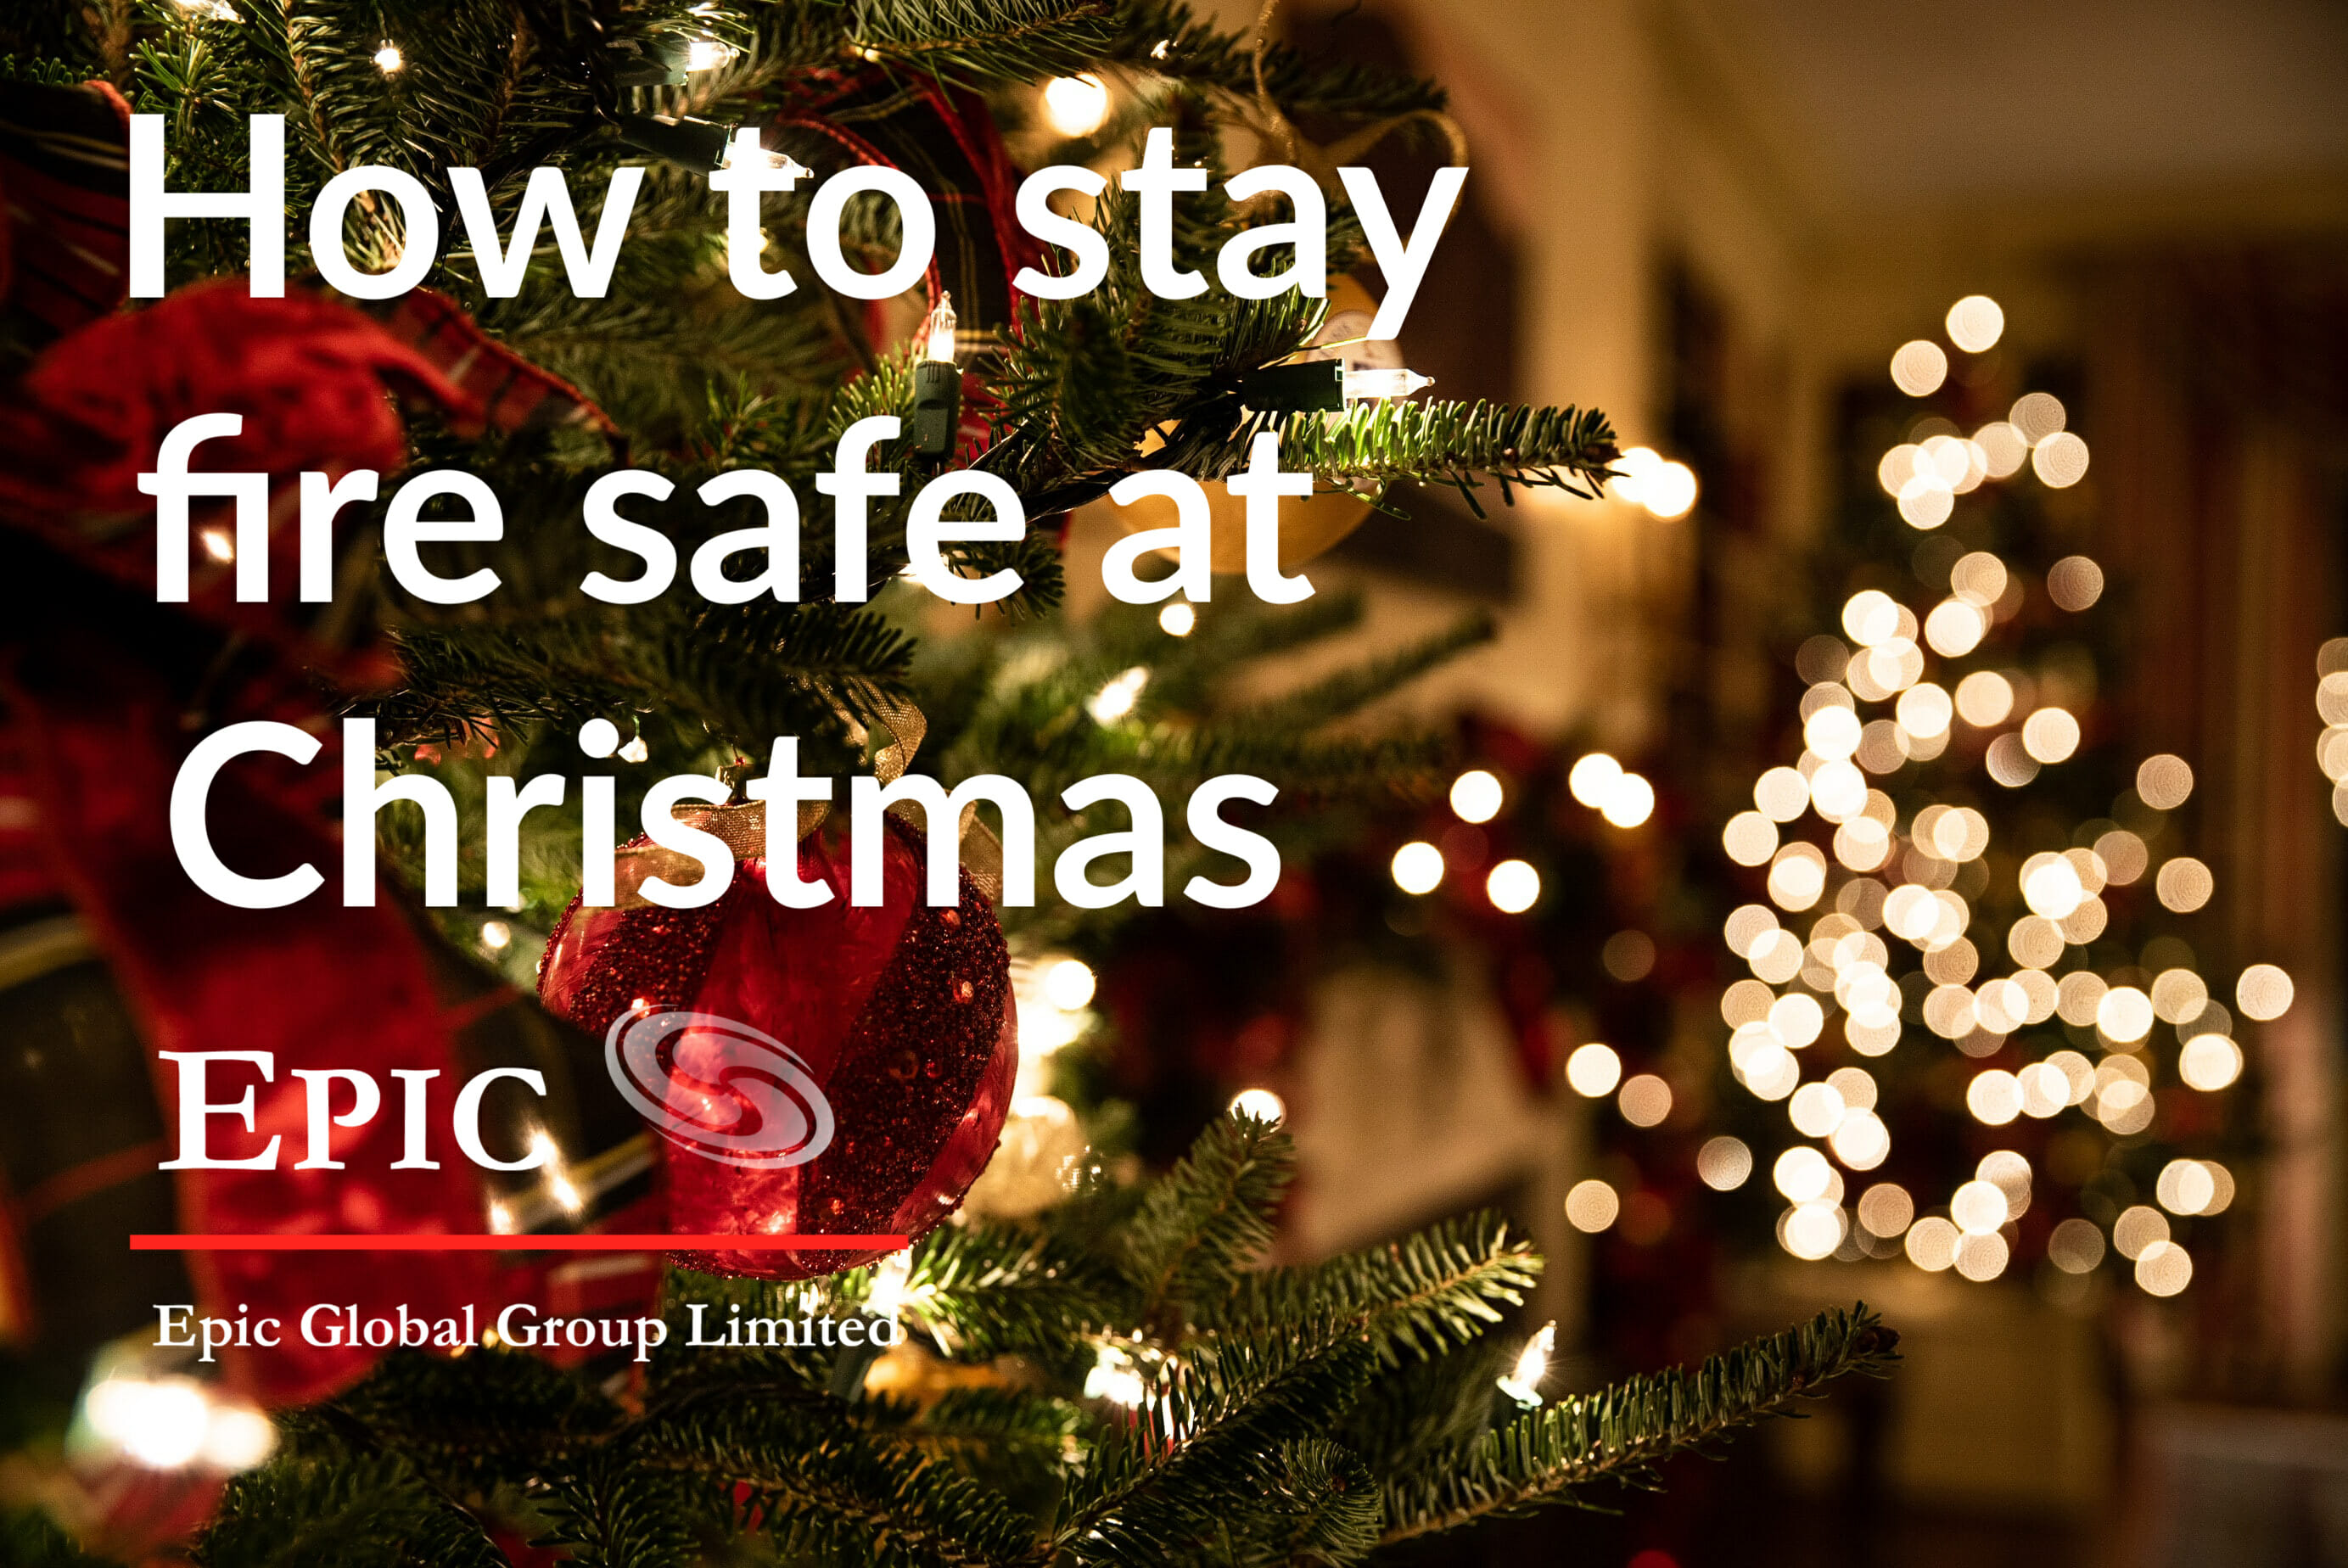 How to stay safe from fire at Christmas